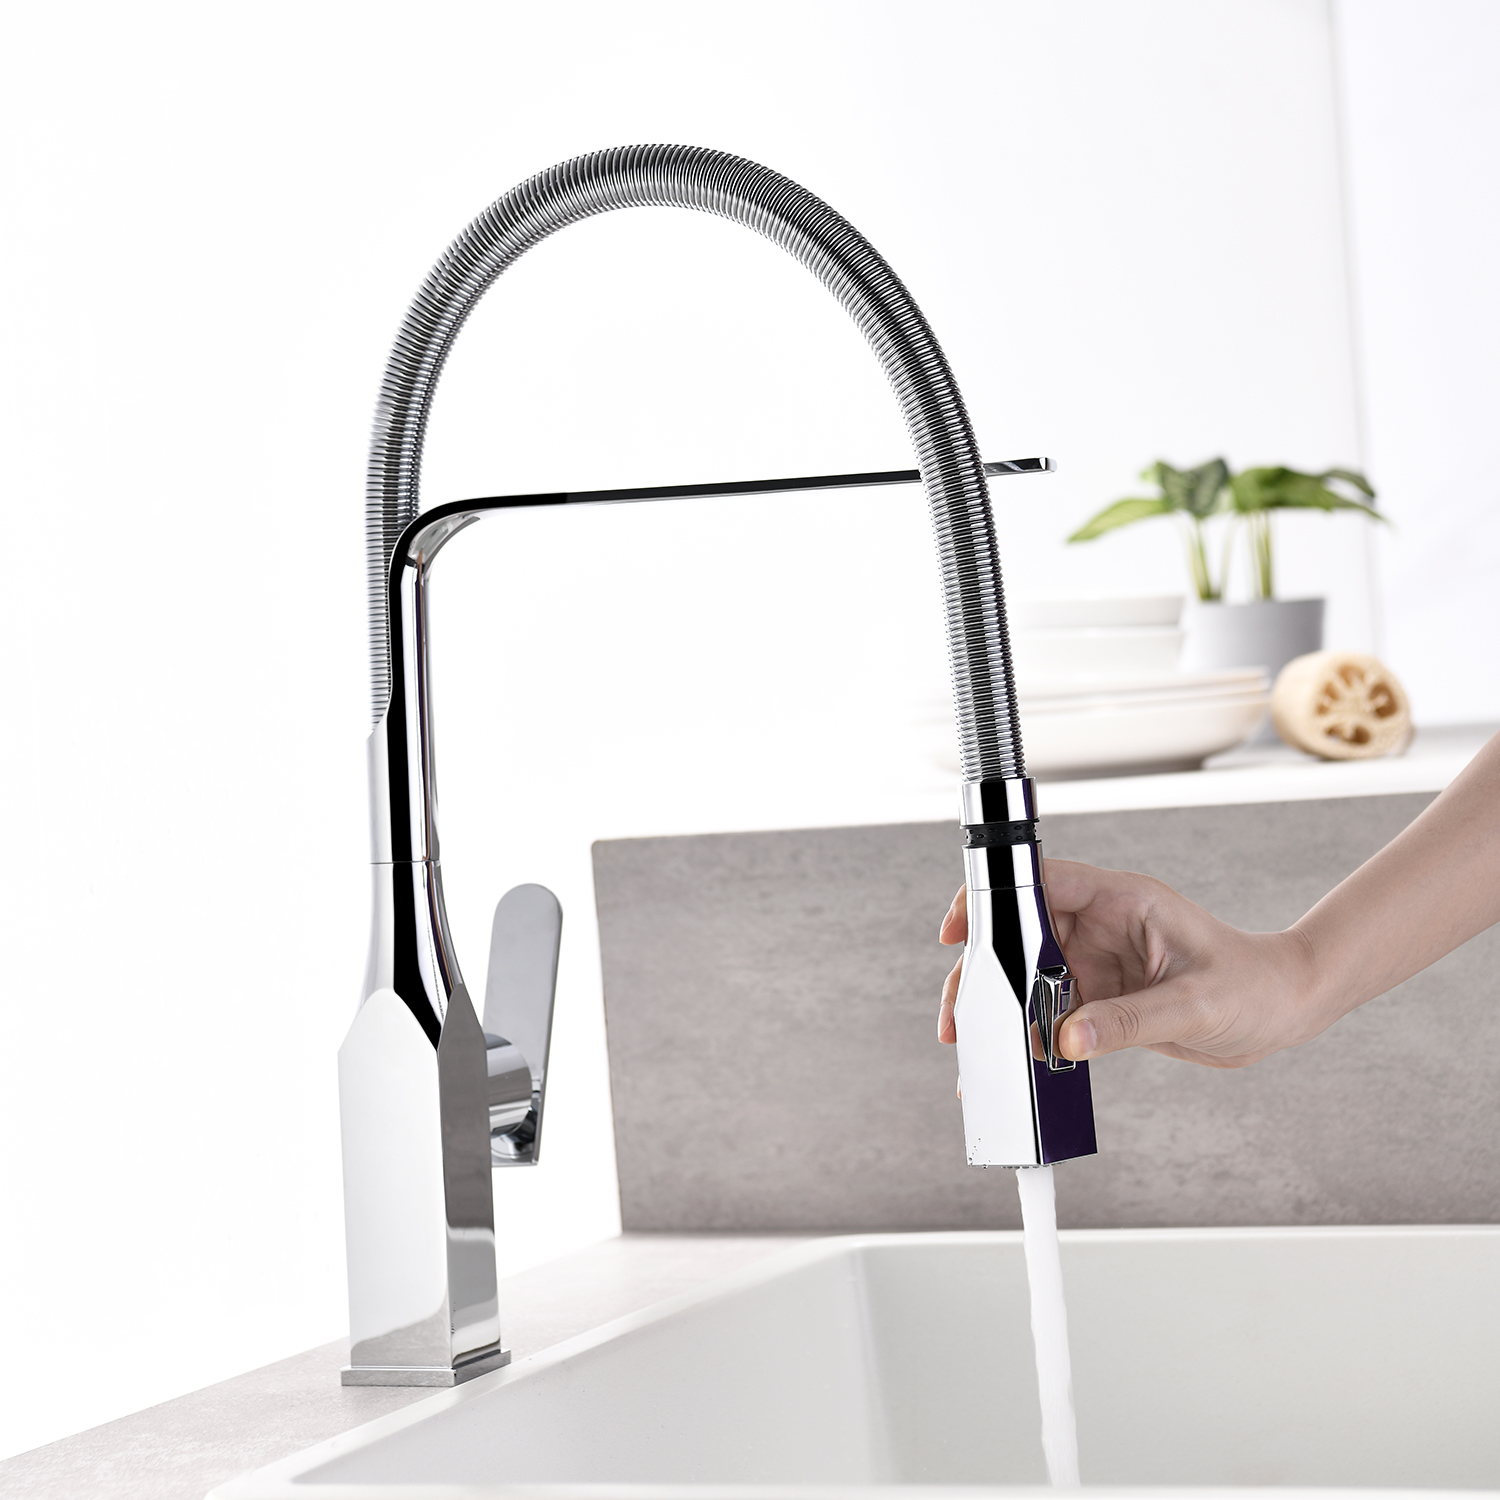 Kitchen Faucet Single Lever Bathroom Faucets with 2 Spray Modes 360 Degree Swivel Basin Sink Faucet Kitchen Mixer Water Tap